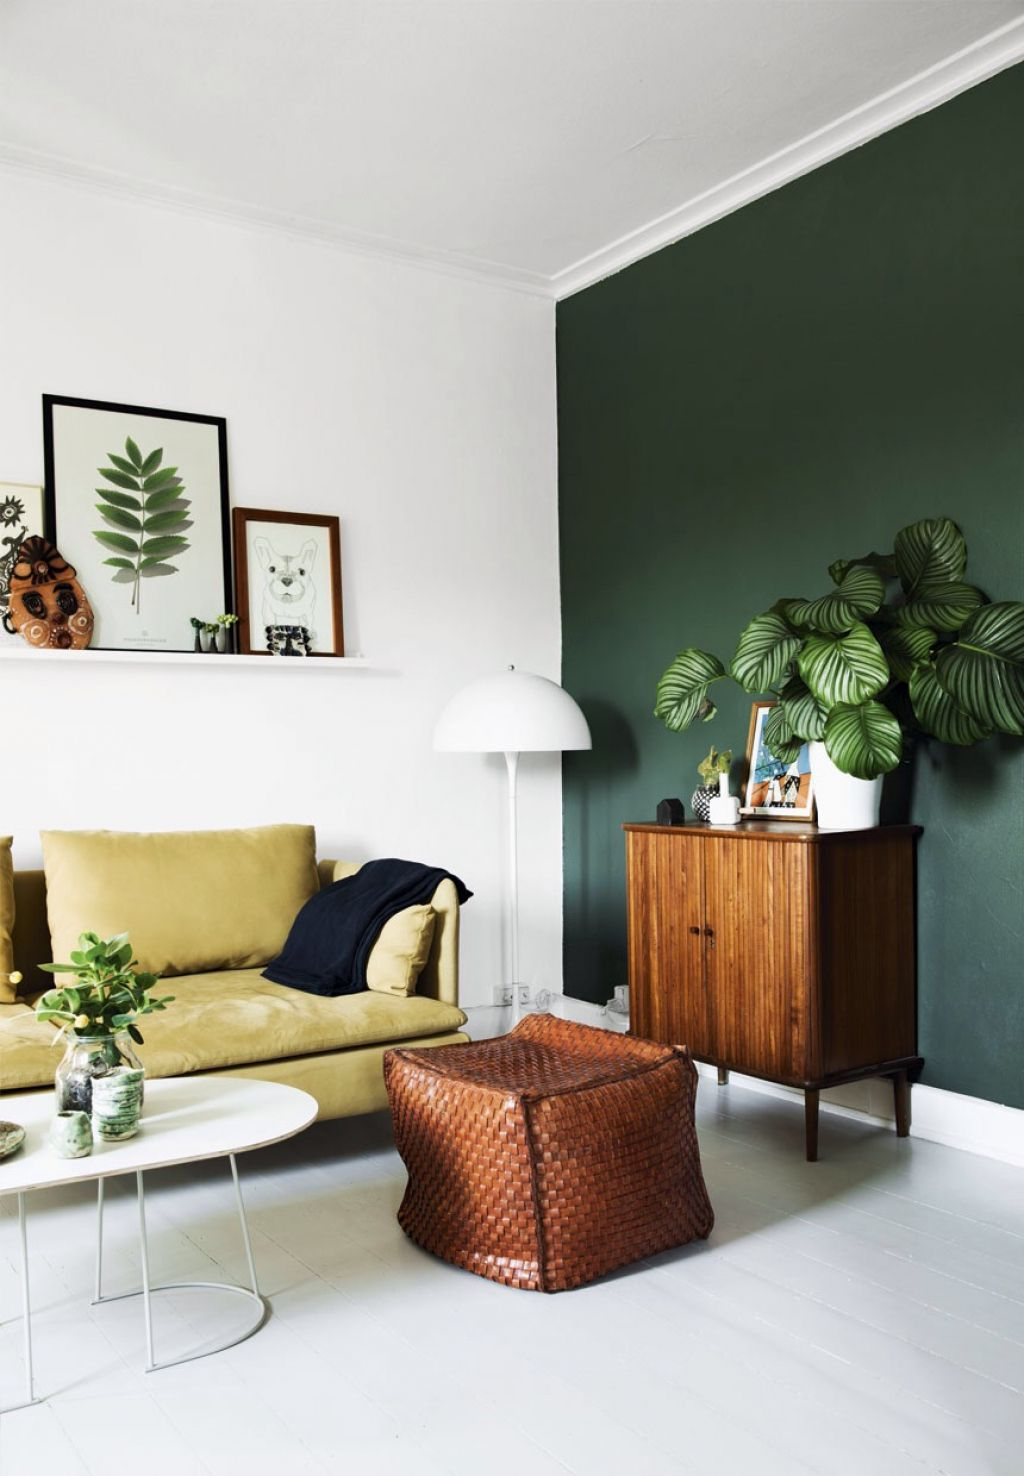 feng shui living room furniture placement images of rooms decorated your location layout and overall